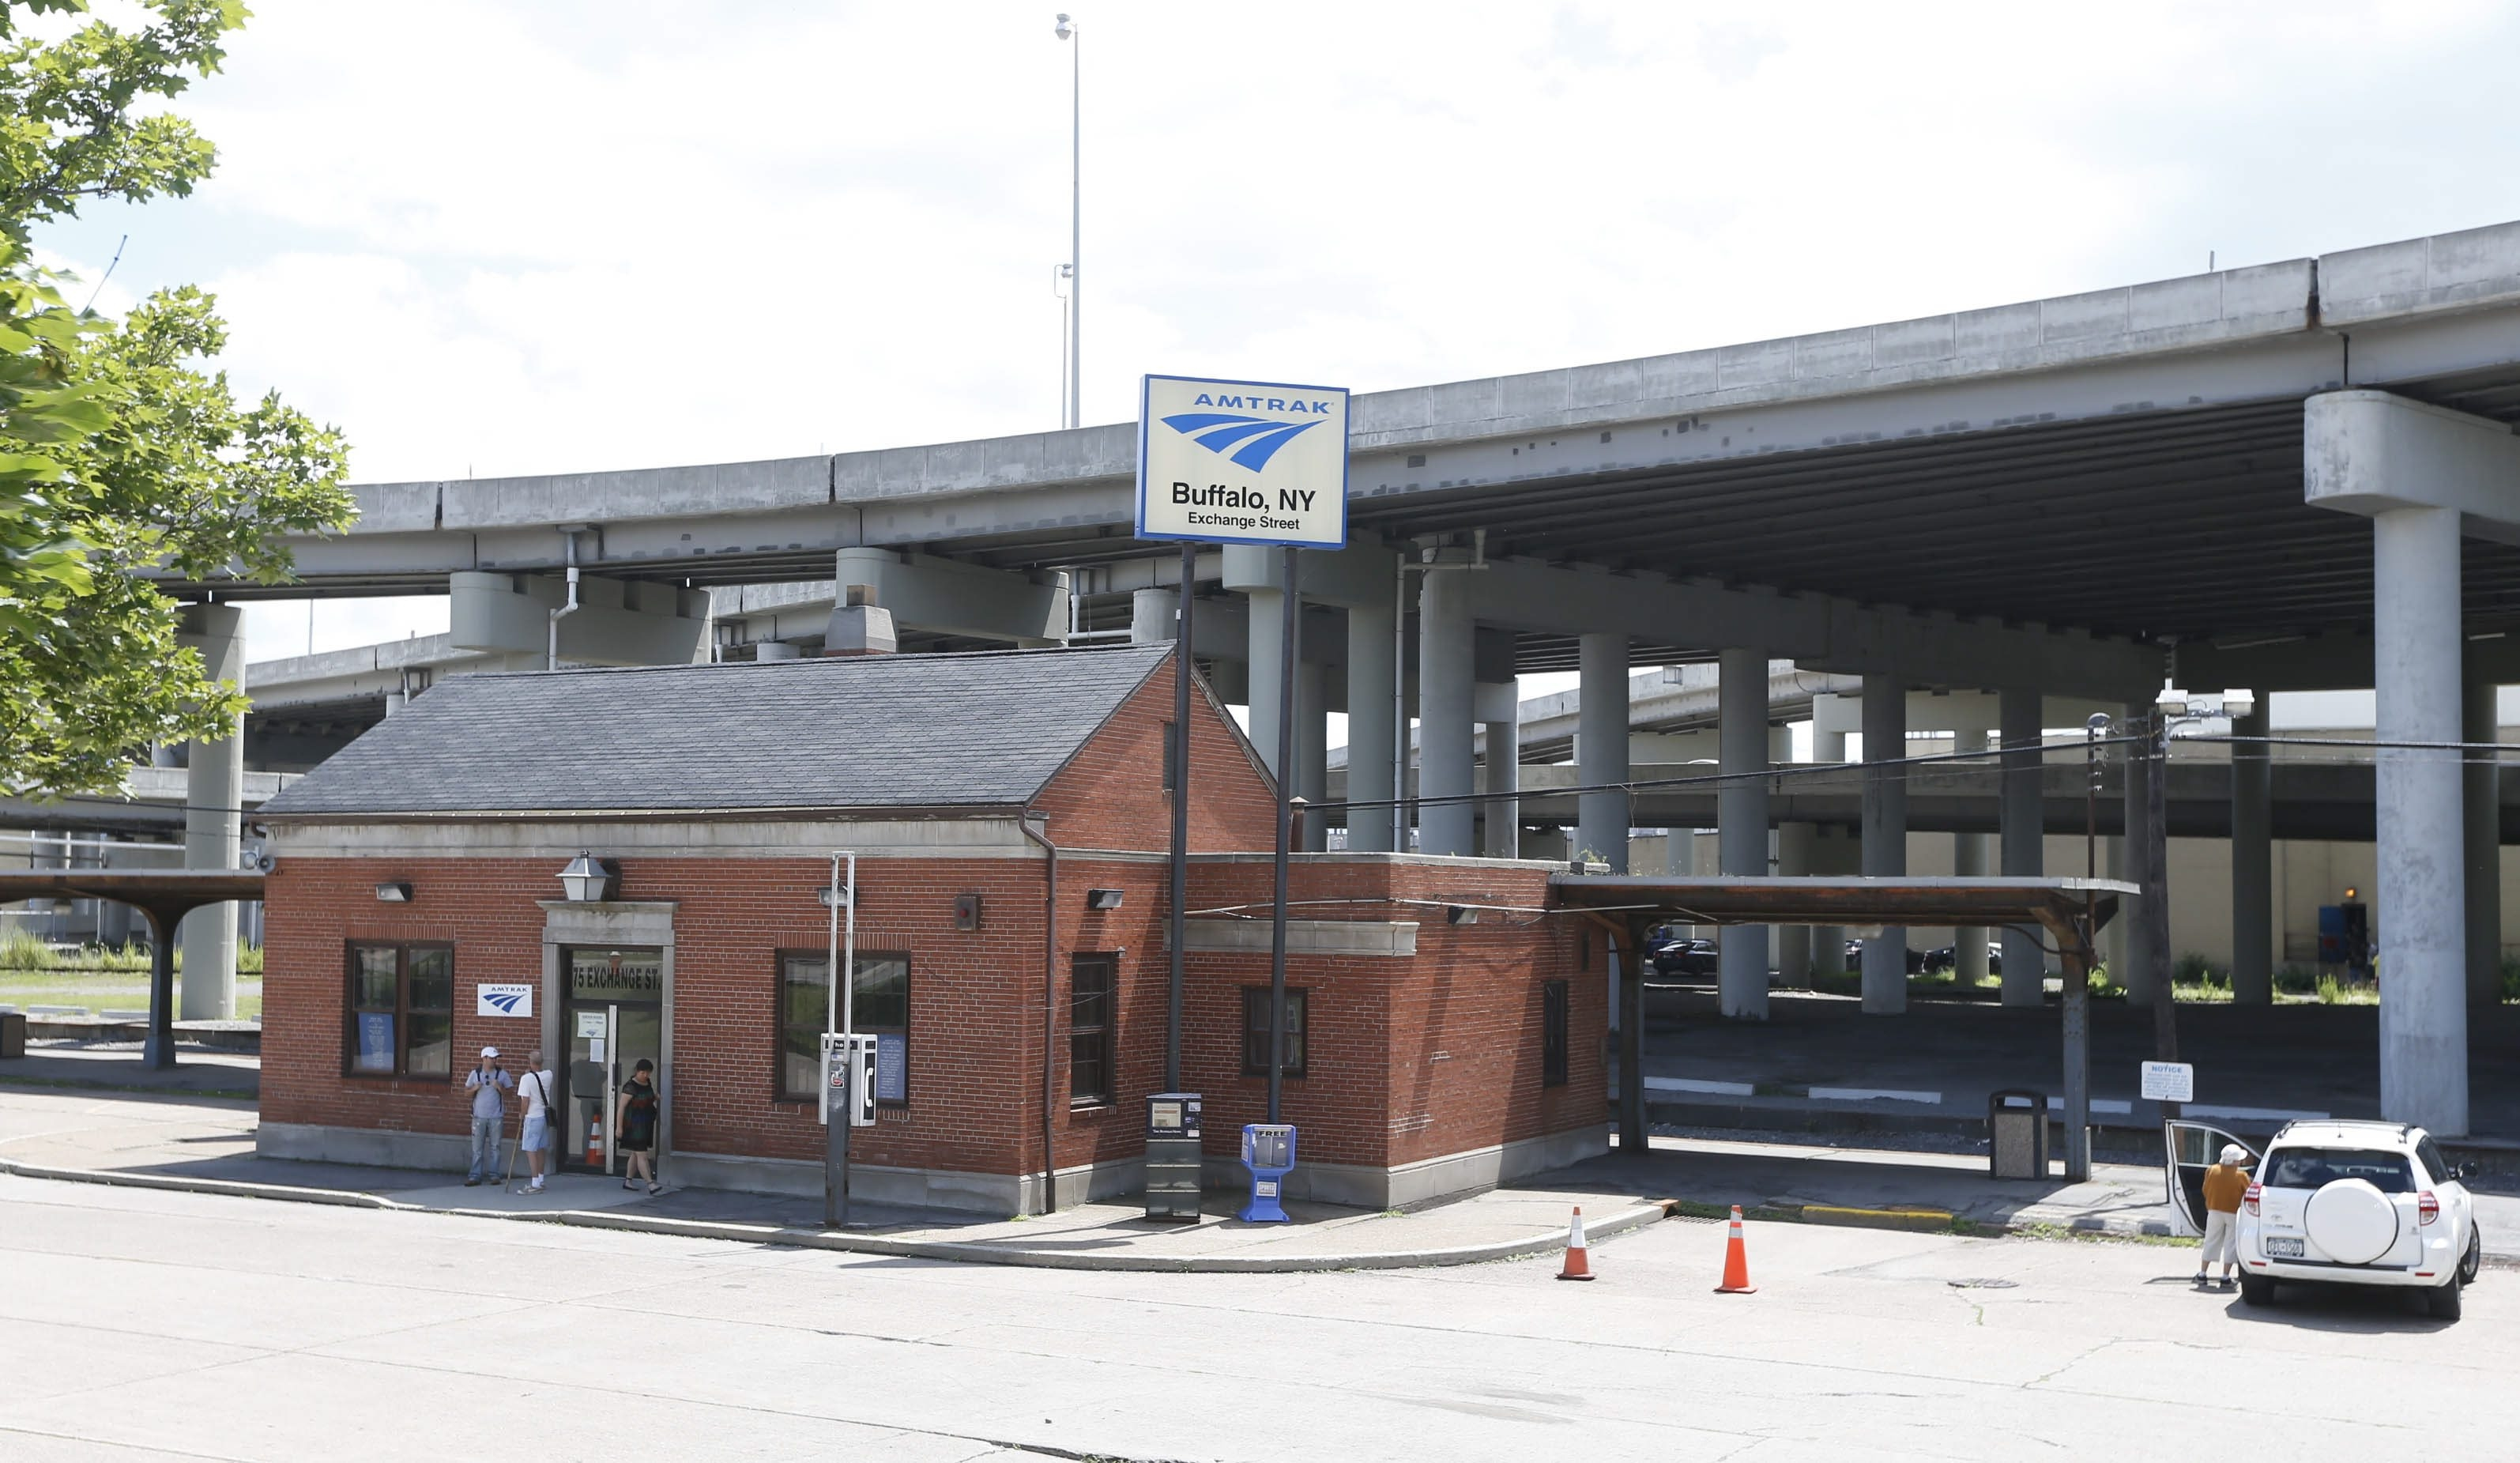 Amtrak's tiny downtown depot in the shadow of the Niagara Thruway masquerades as a real train station.